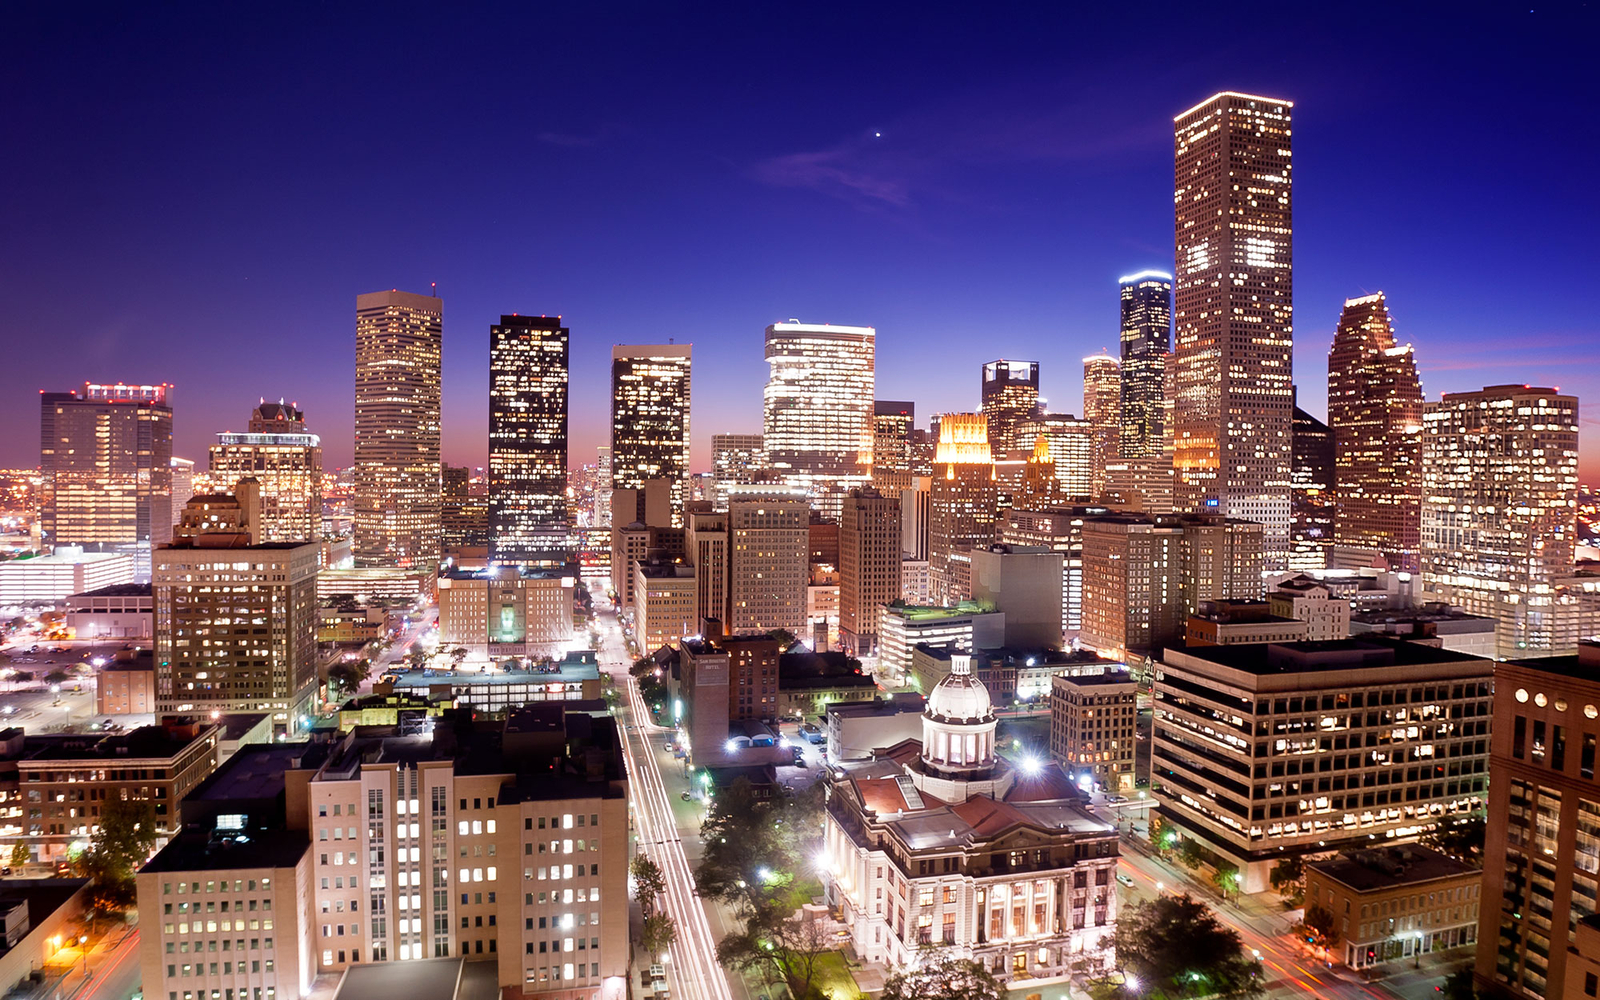 downtown at night in Houston, TX